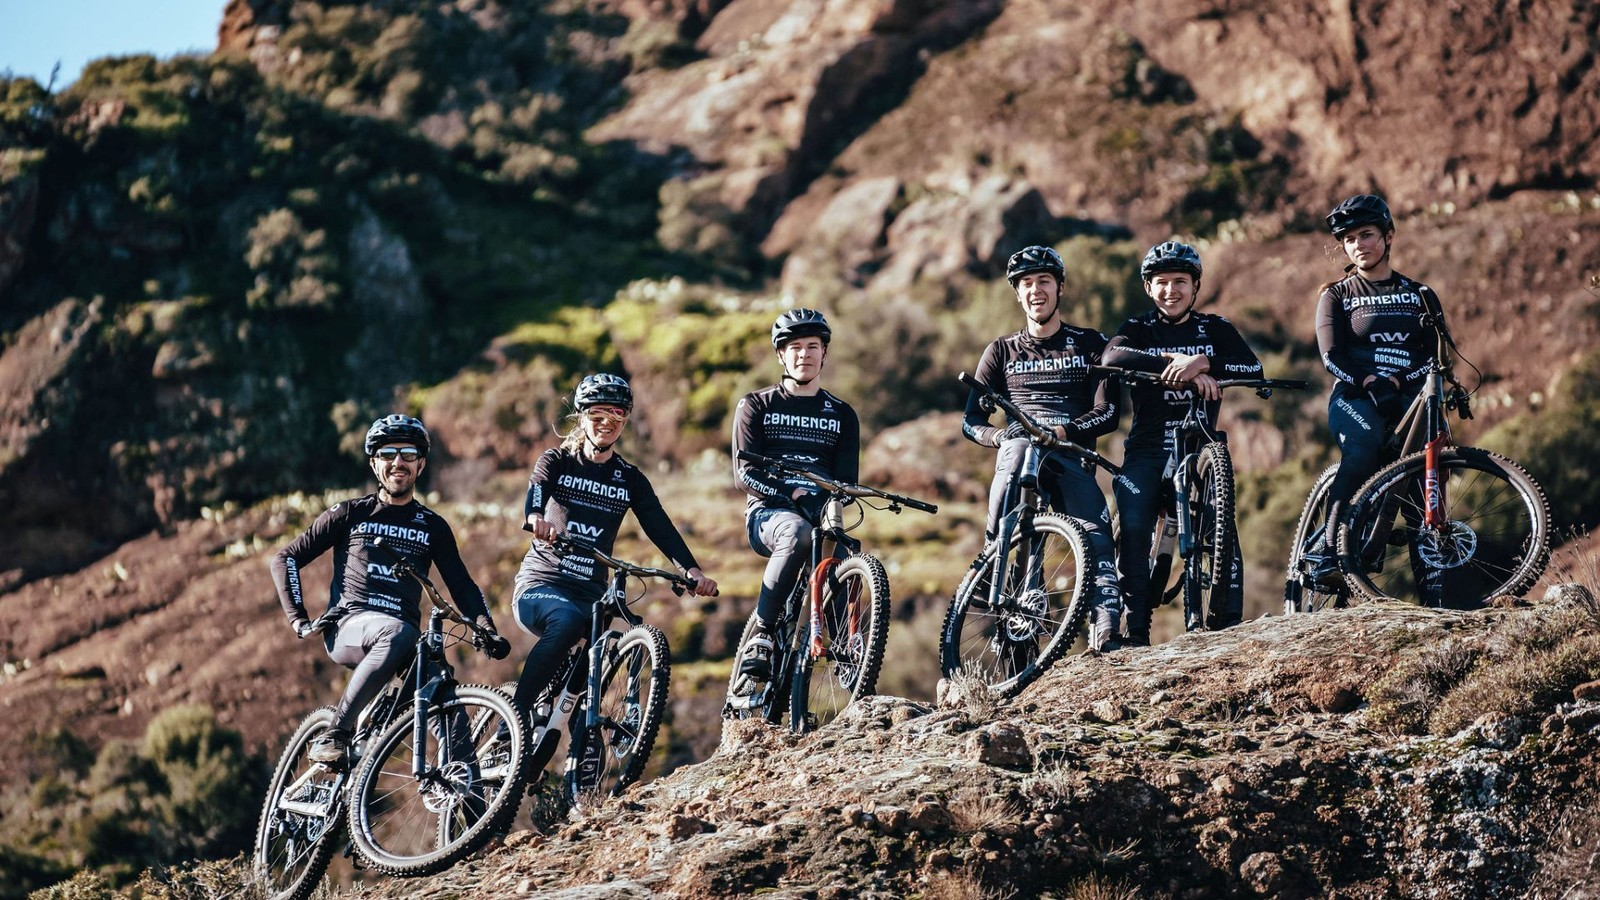 COMMENCAL Enduro Team: New Partners and Two New Riders